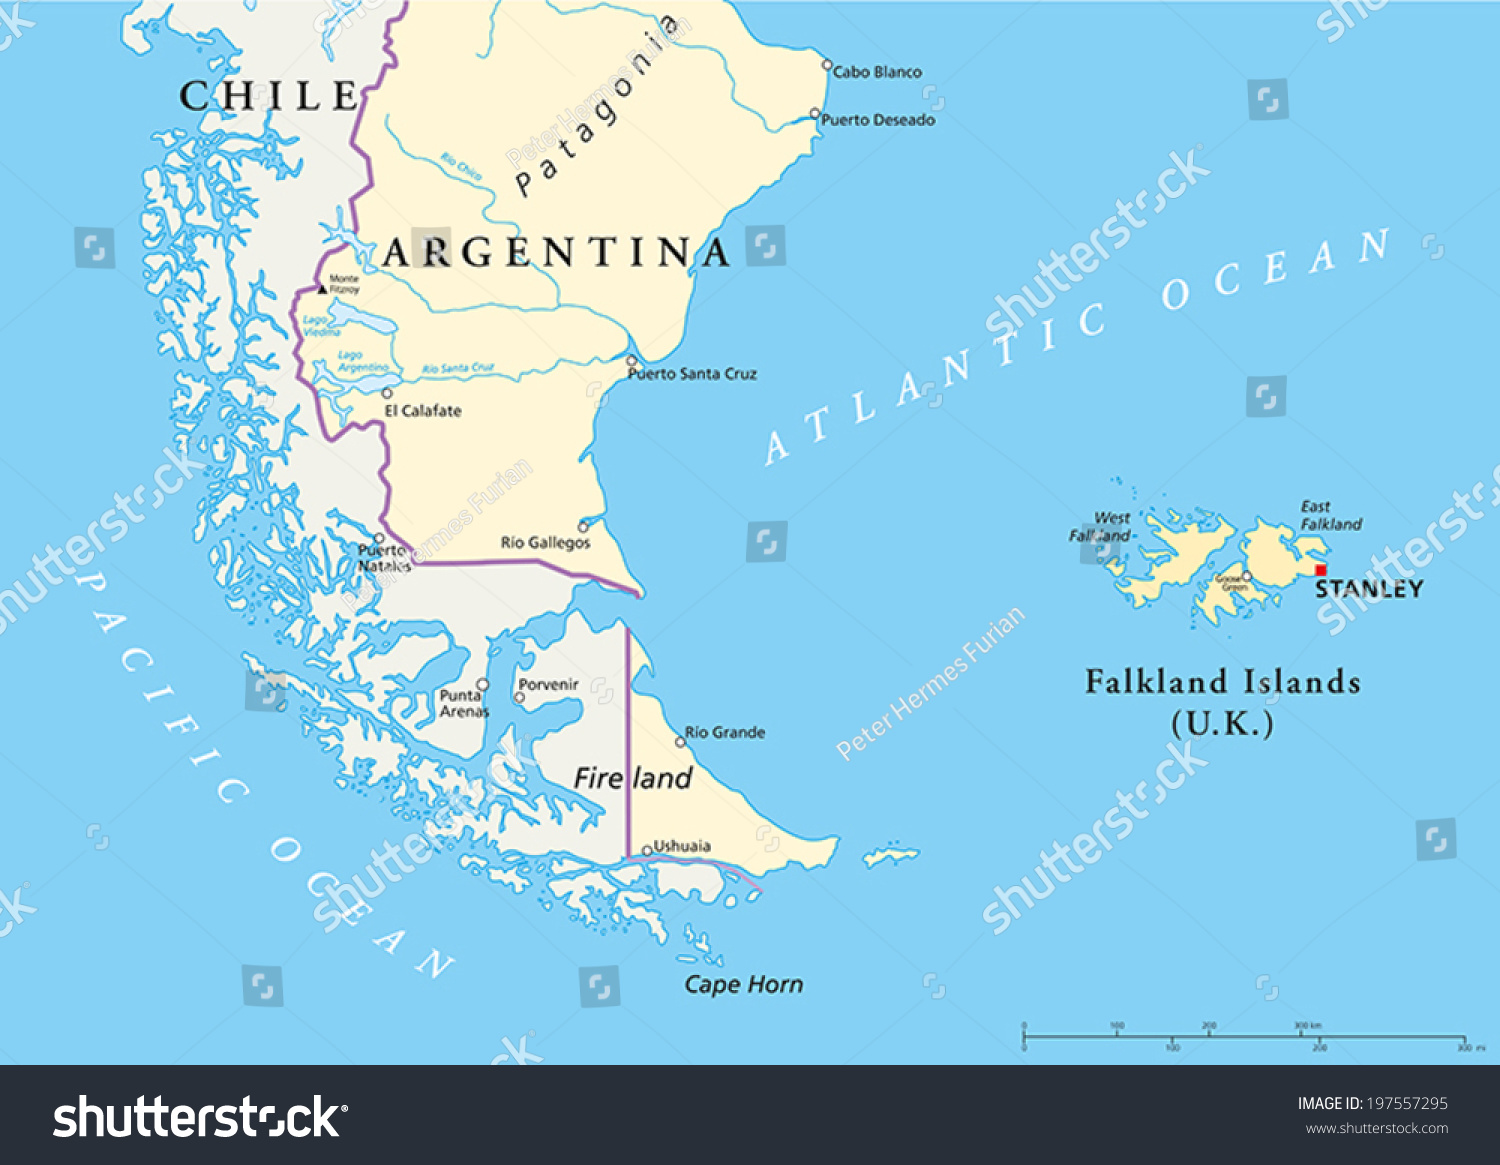 Is Falkland Islands Part Of South America